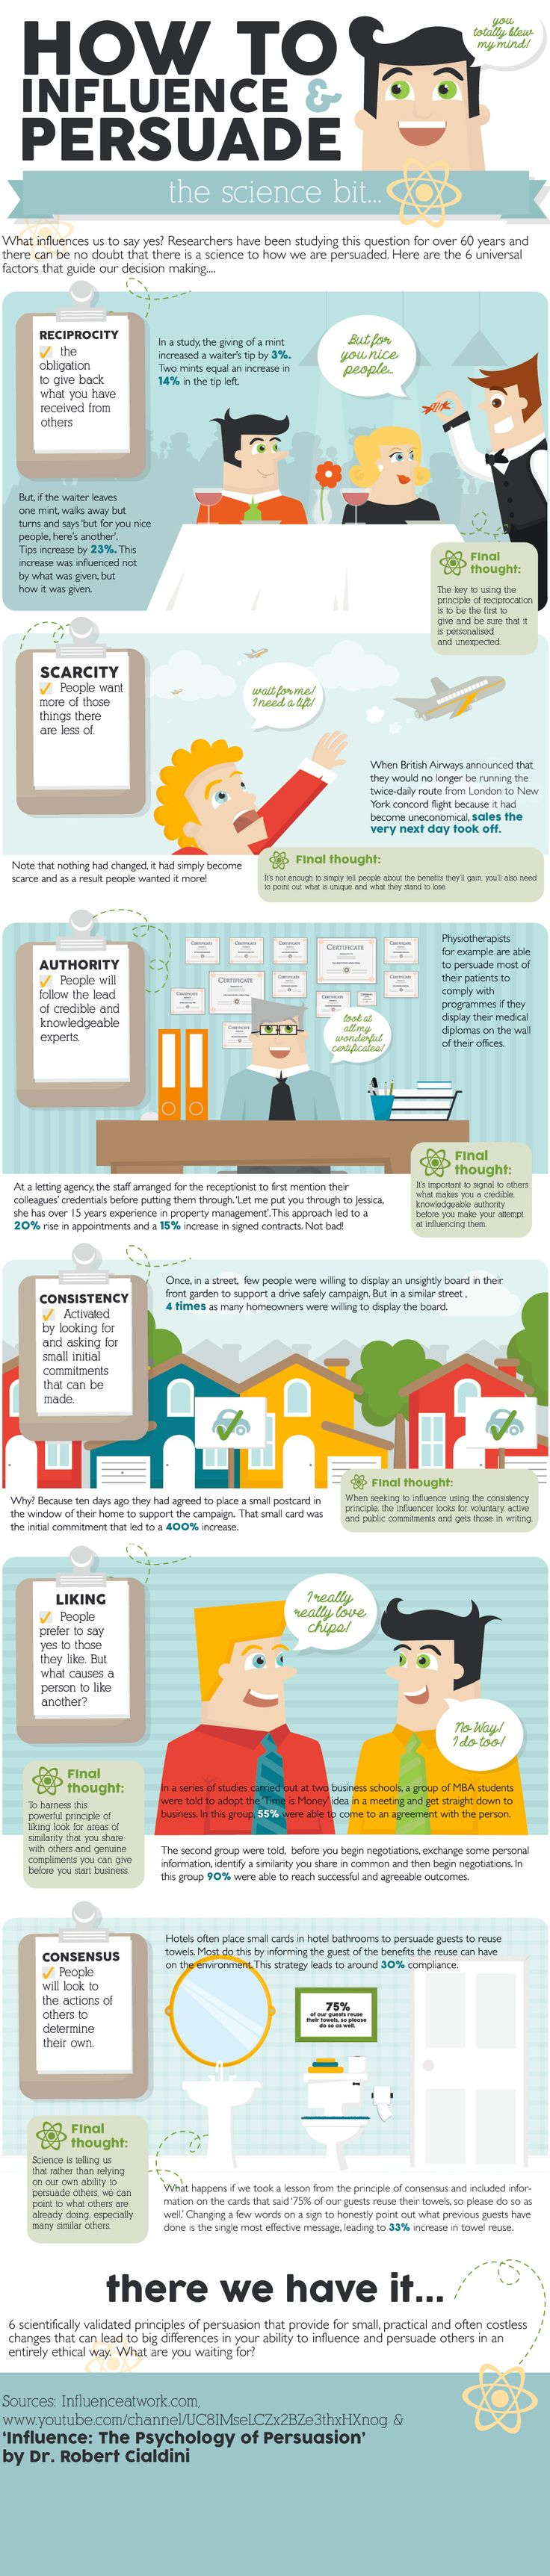 "ENTREPRENEURS - ""How do you persuade? The word ""influencer"" gets thrown around a lot in business, but how does the power of the persuasion really work? An infographic from U.K.-based virtual phone service Everreach, explains the elements companies can utilize to impact their customers and get to ""yes.""For businesses, the principles of ""reciprocity"" and ""scarcity"" are big factors in the persuasion game. Have a look!"""